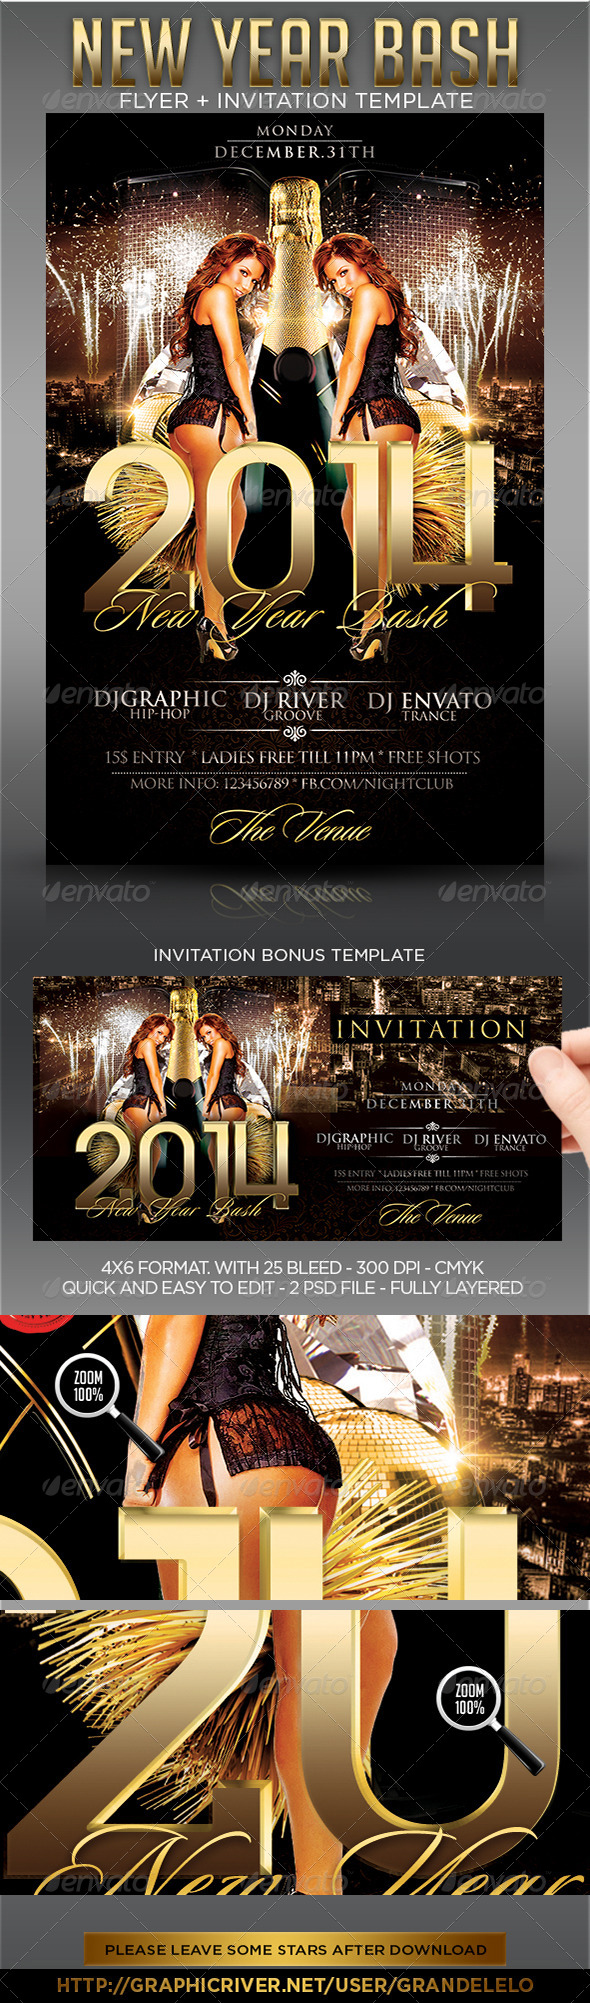 2014 New Year Party Flyer Template - Clubs & Parties Events